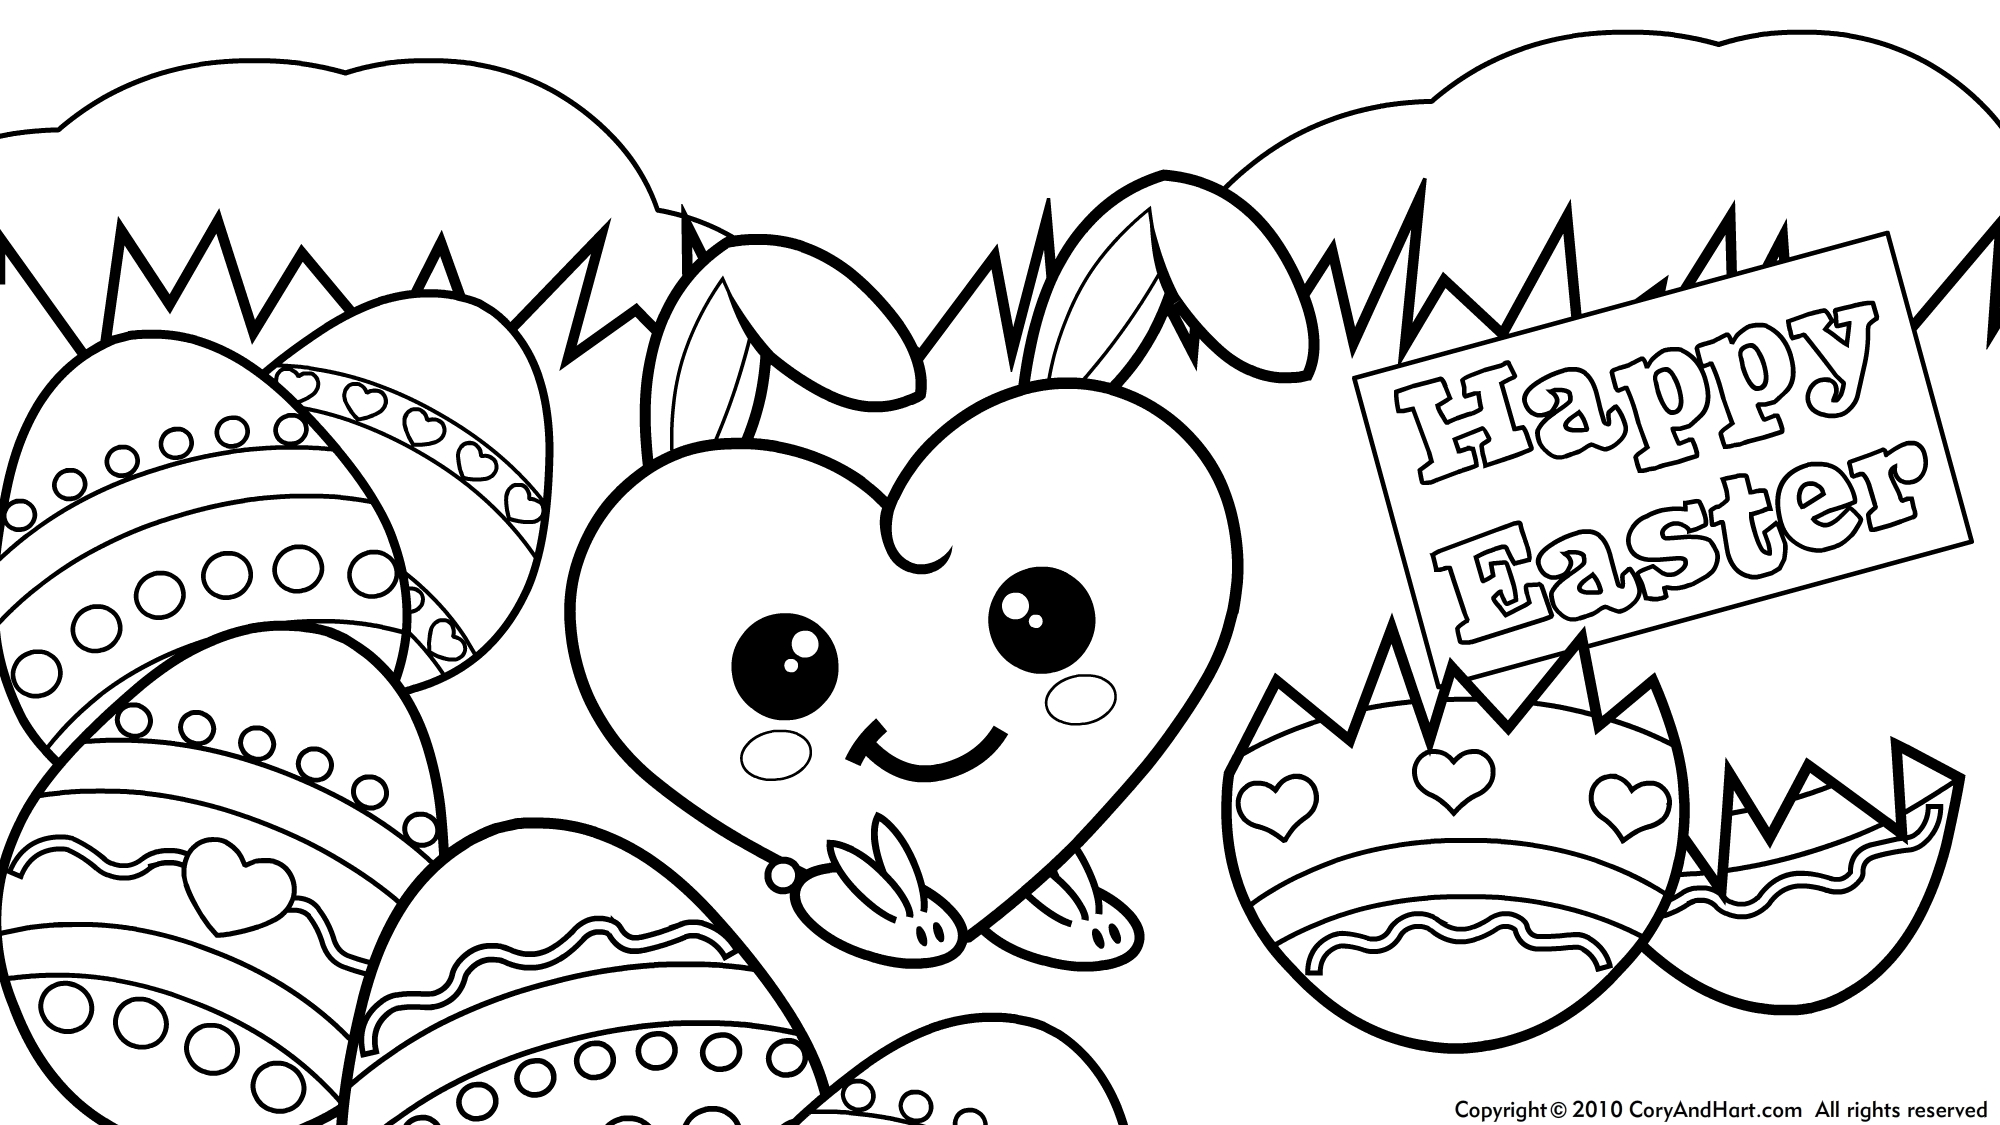 2000x1125 New Disney Frozen Elsa With Easter Bunny Colouring Page Disney